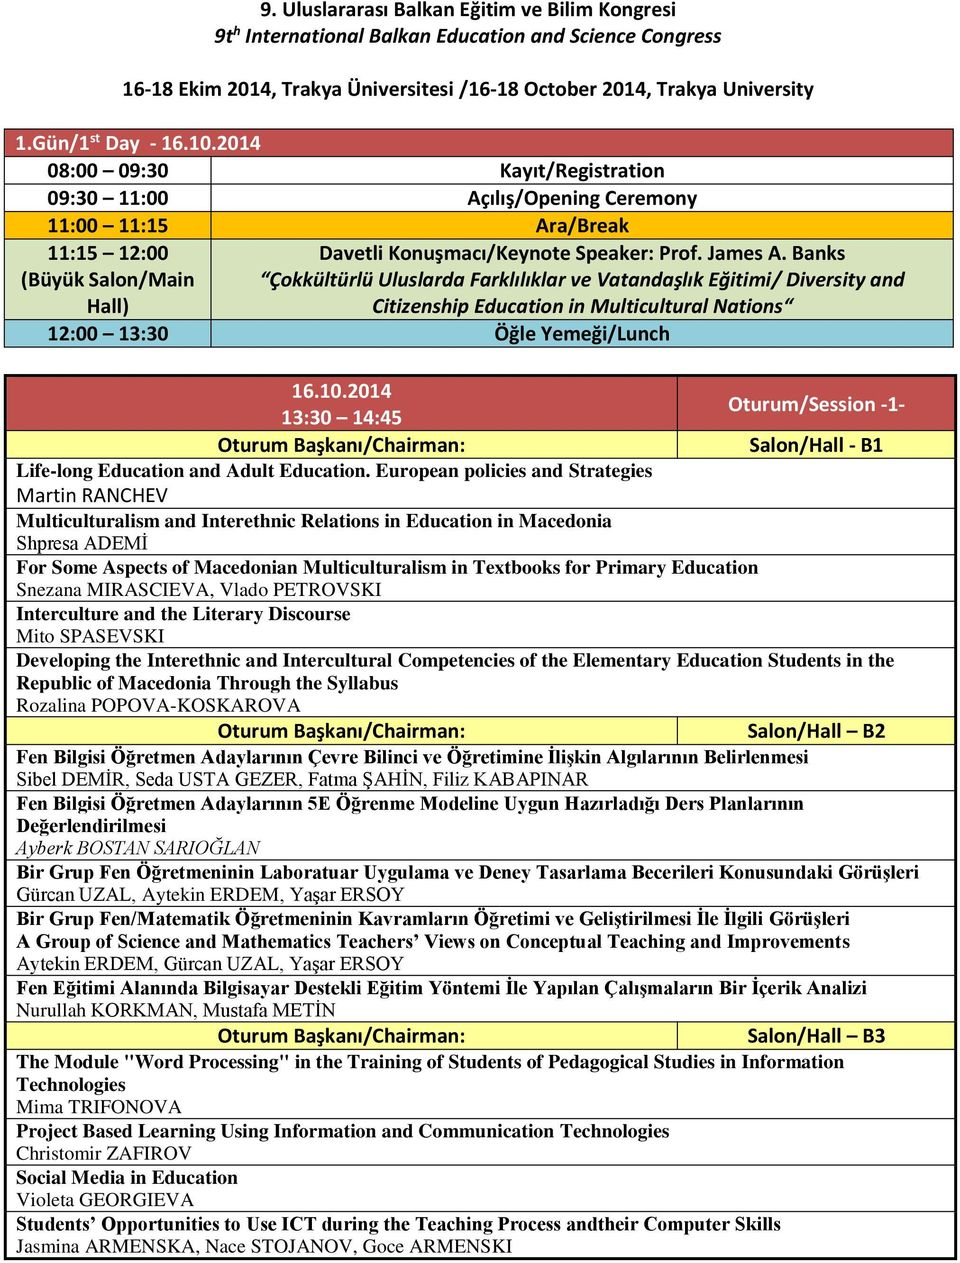 Banks Çokkültürlü Uluslarda Farklılıklar ve Vatandaşlık Eğitimi/ Diversity and Citizenship Education in Multicultural Nations 12:00 13:30 Öğle Yemeği/Lunch 16.10.